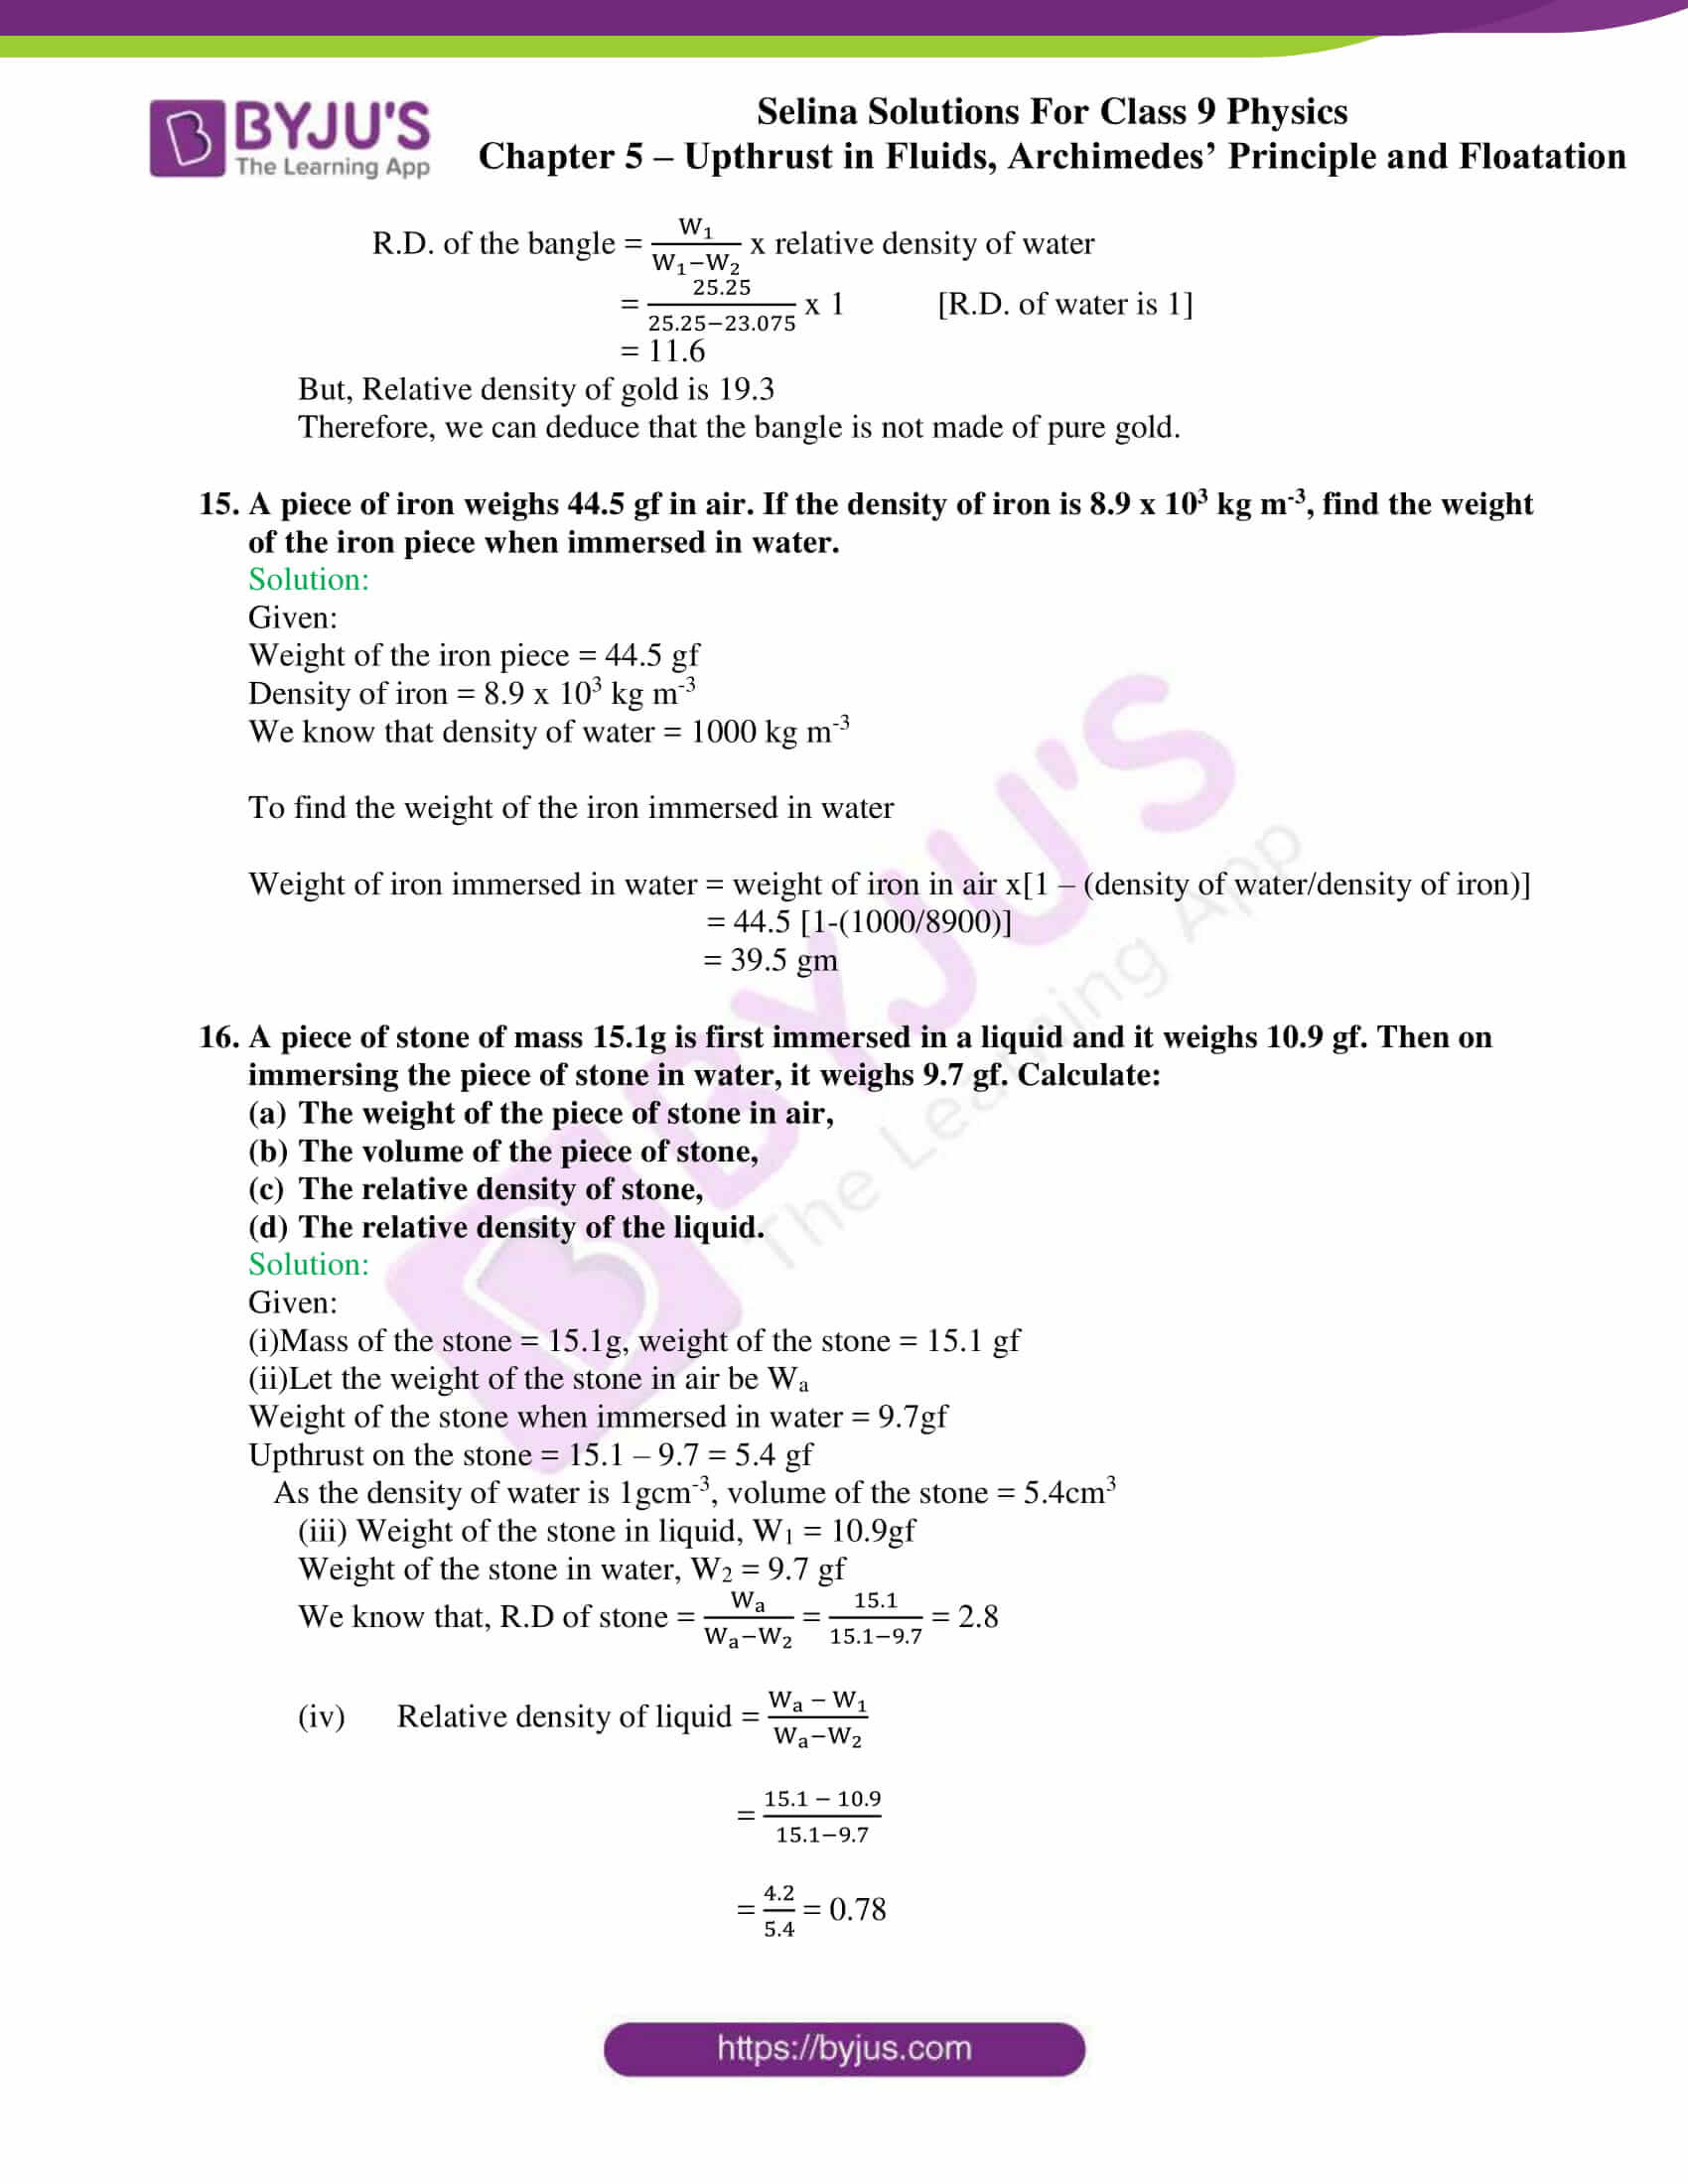 selina solutions class 9 physics chapter 5 part 22